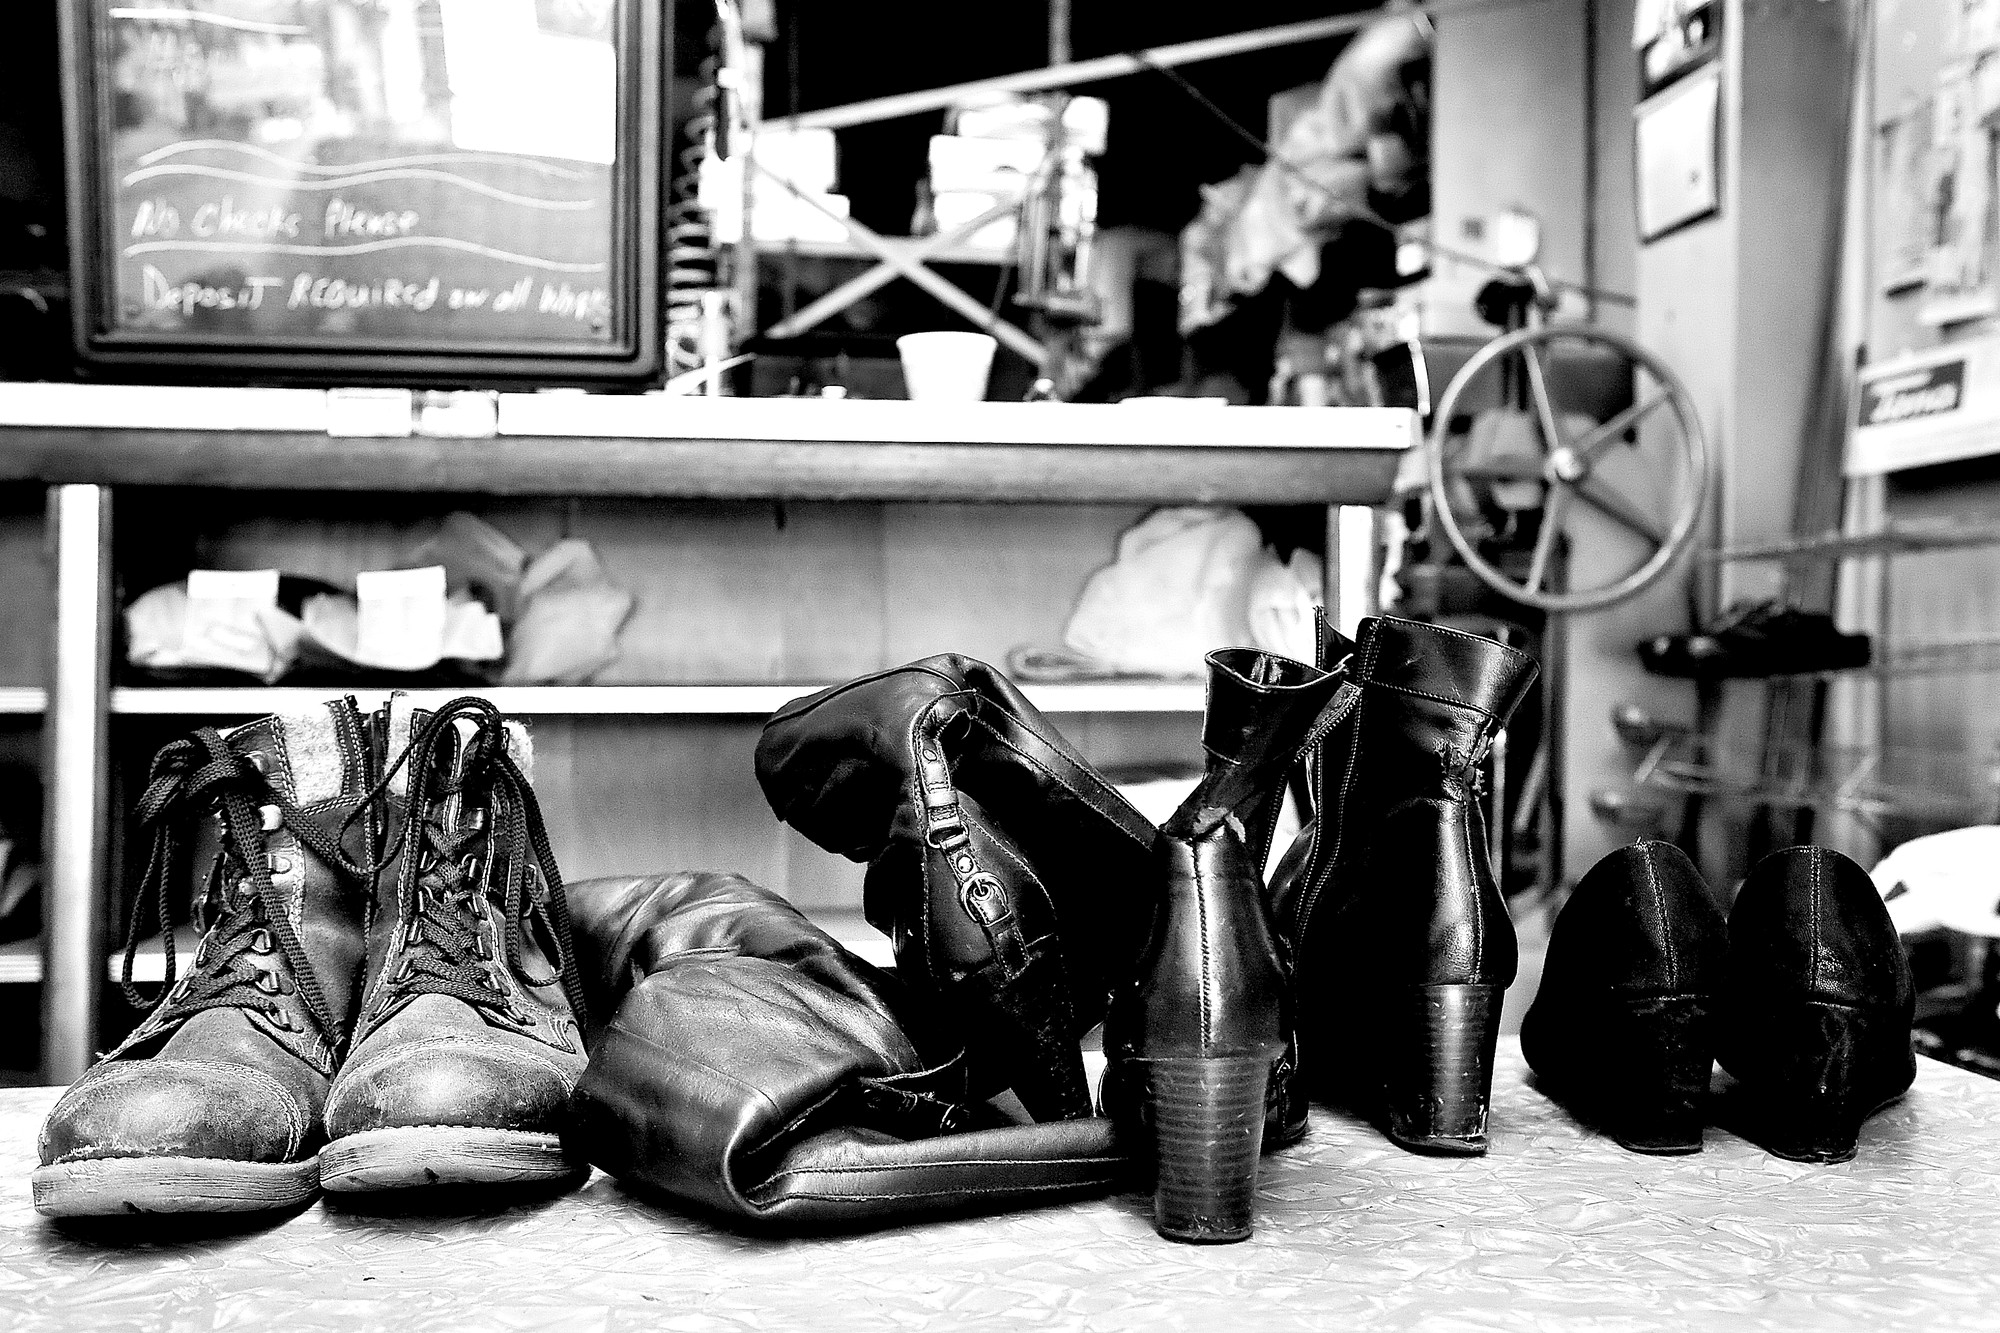 Boots and shoes waiting to be fixed.